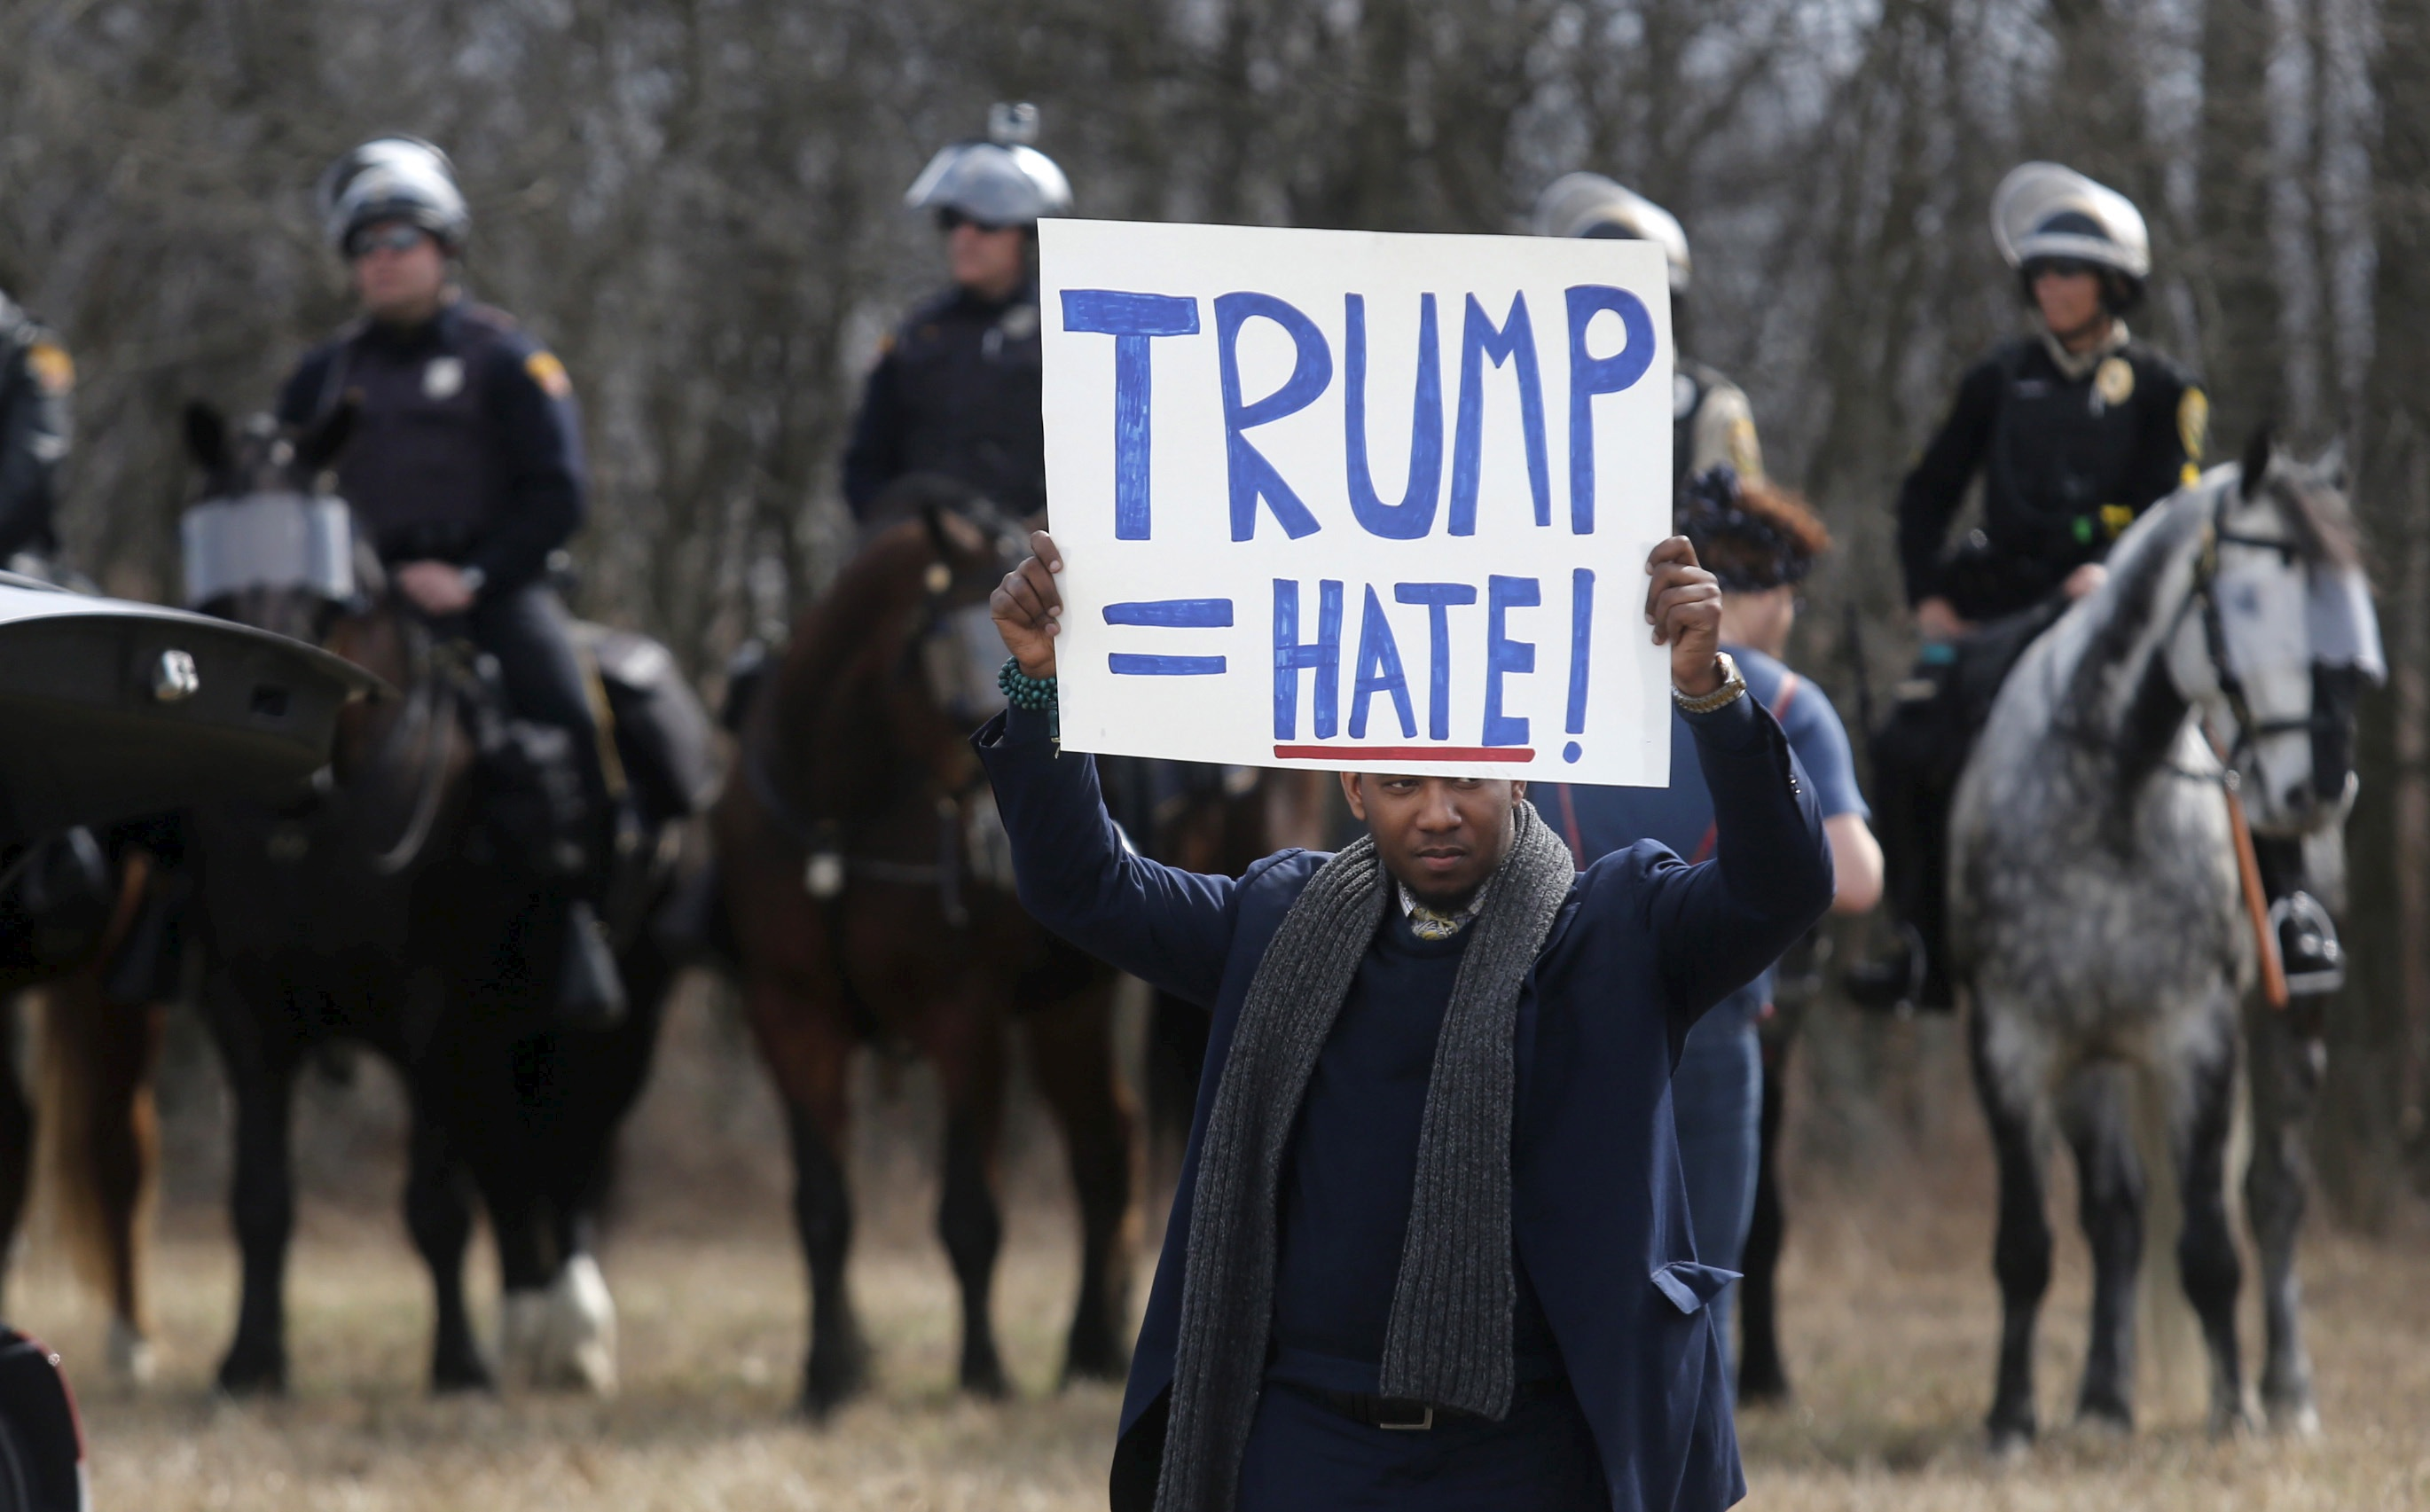 An anti-Trump protester holds his protest sign in front of mounted police outside a rally for Republican U.S. presidential candidate